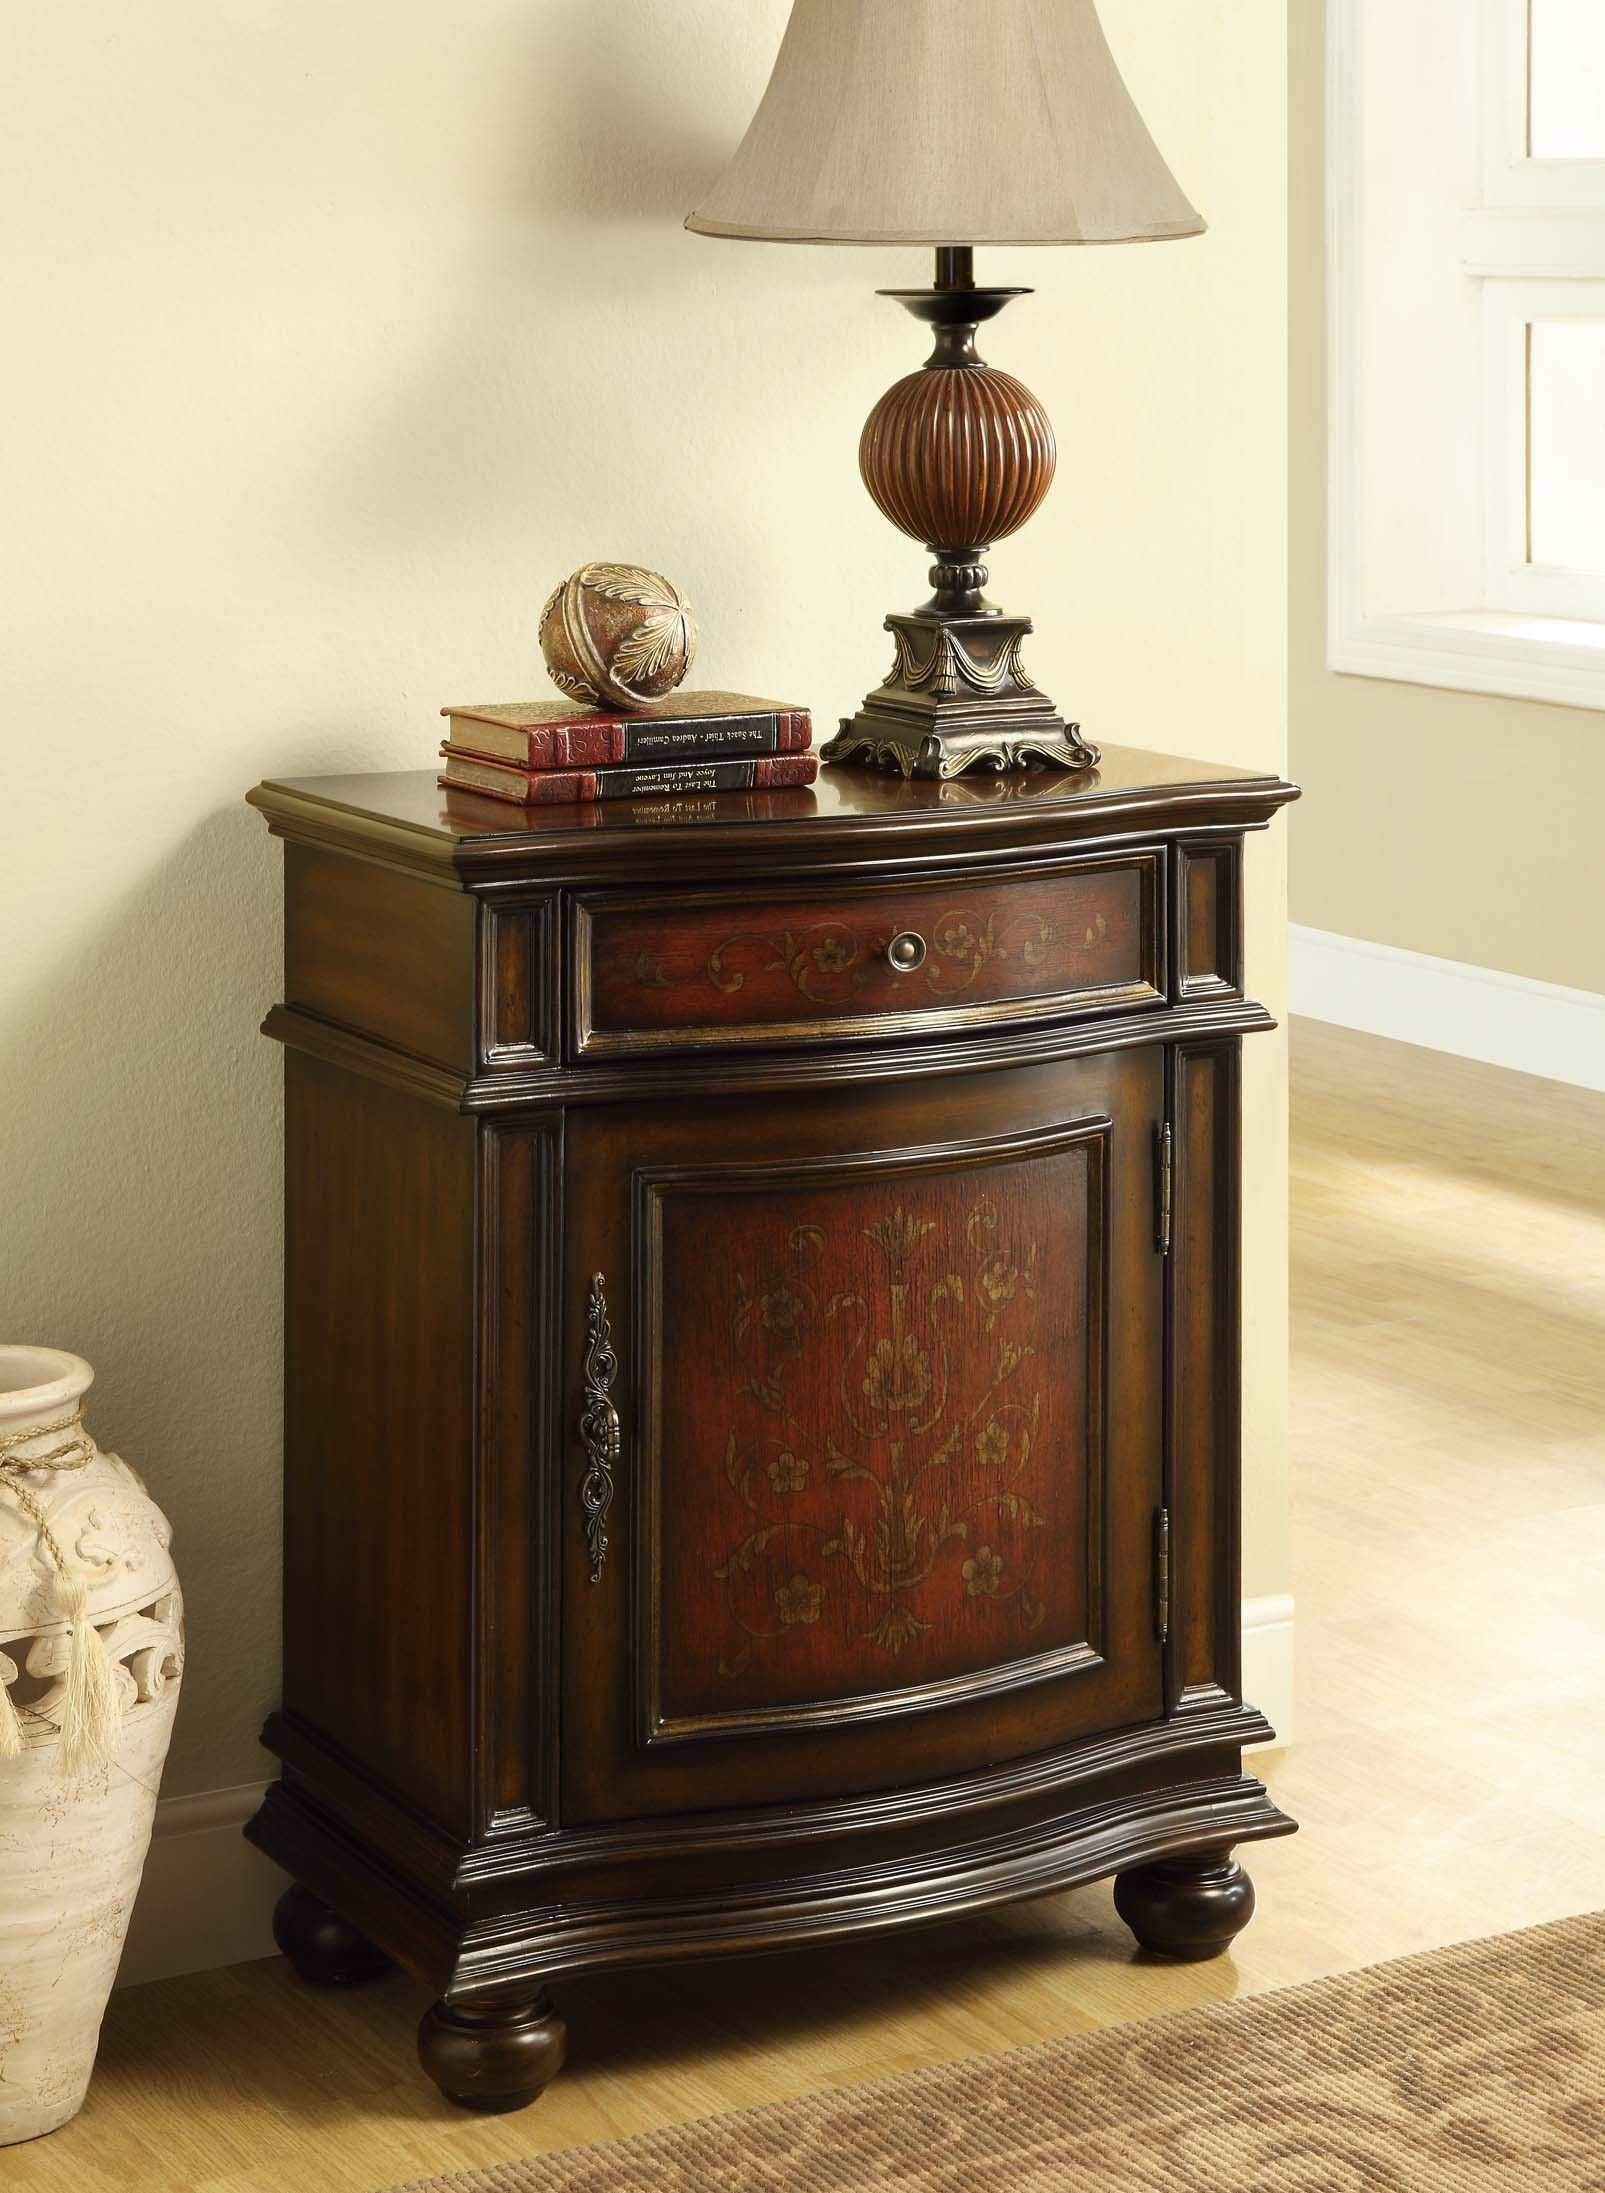 Take A Blast Into The 1700u0027s With This Traditional Bombay Cabinet! This  Beautiful Chest Conveniently